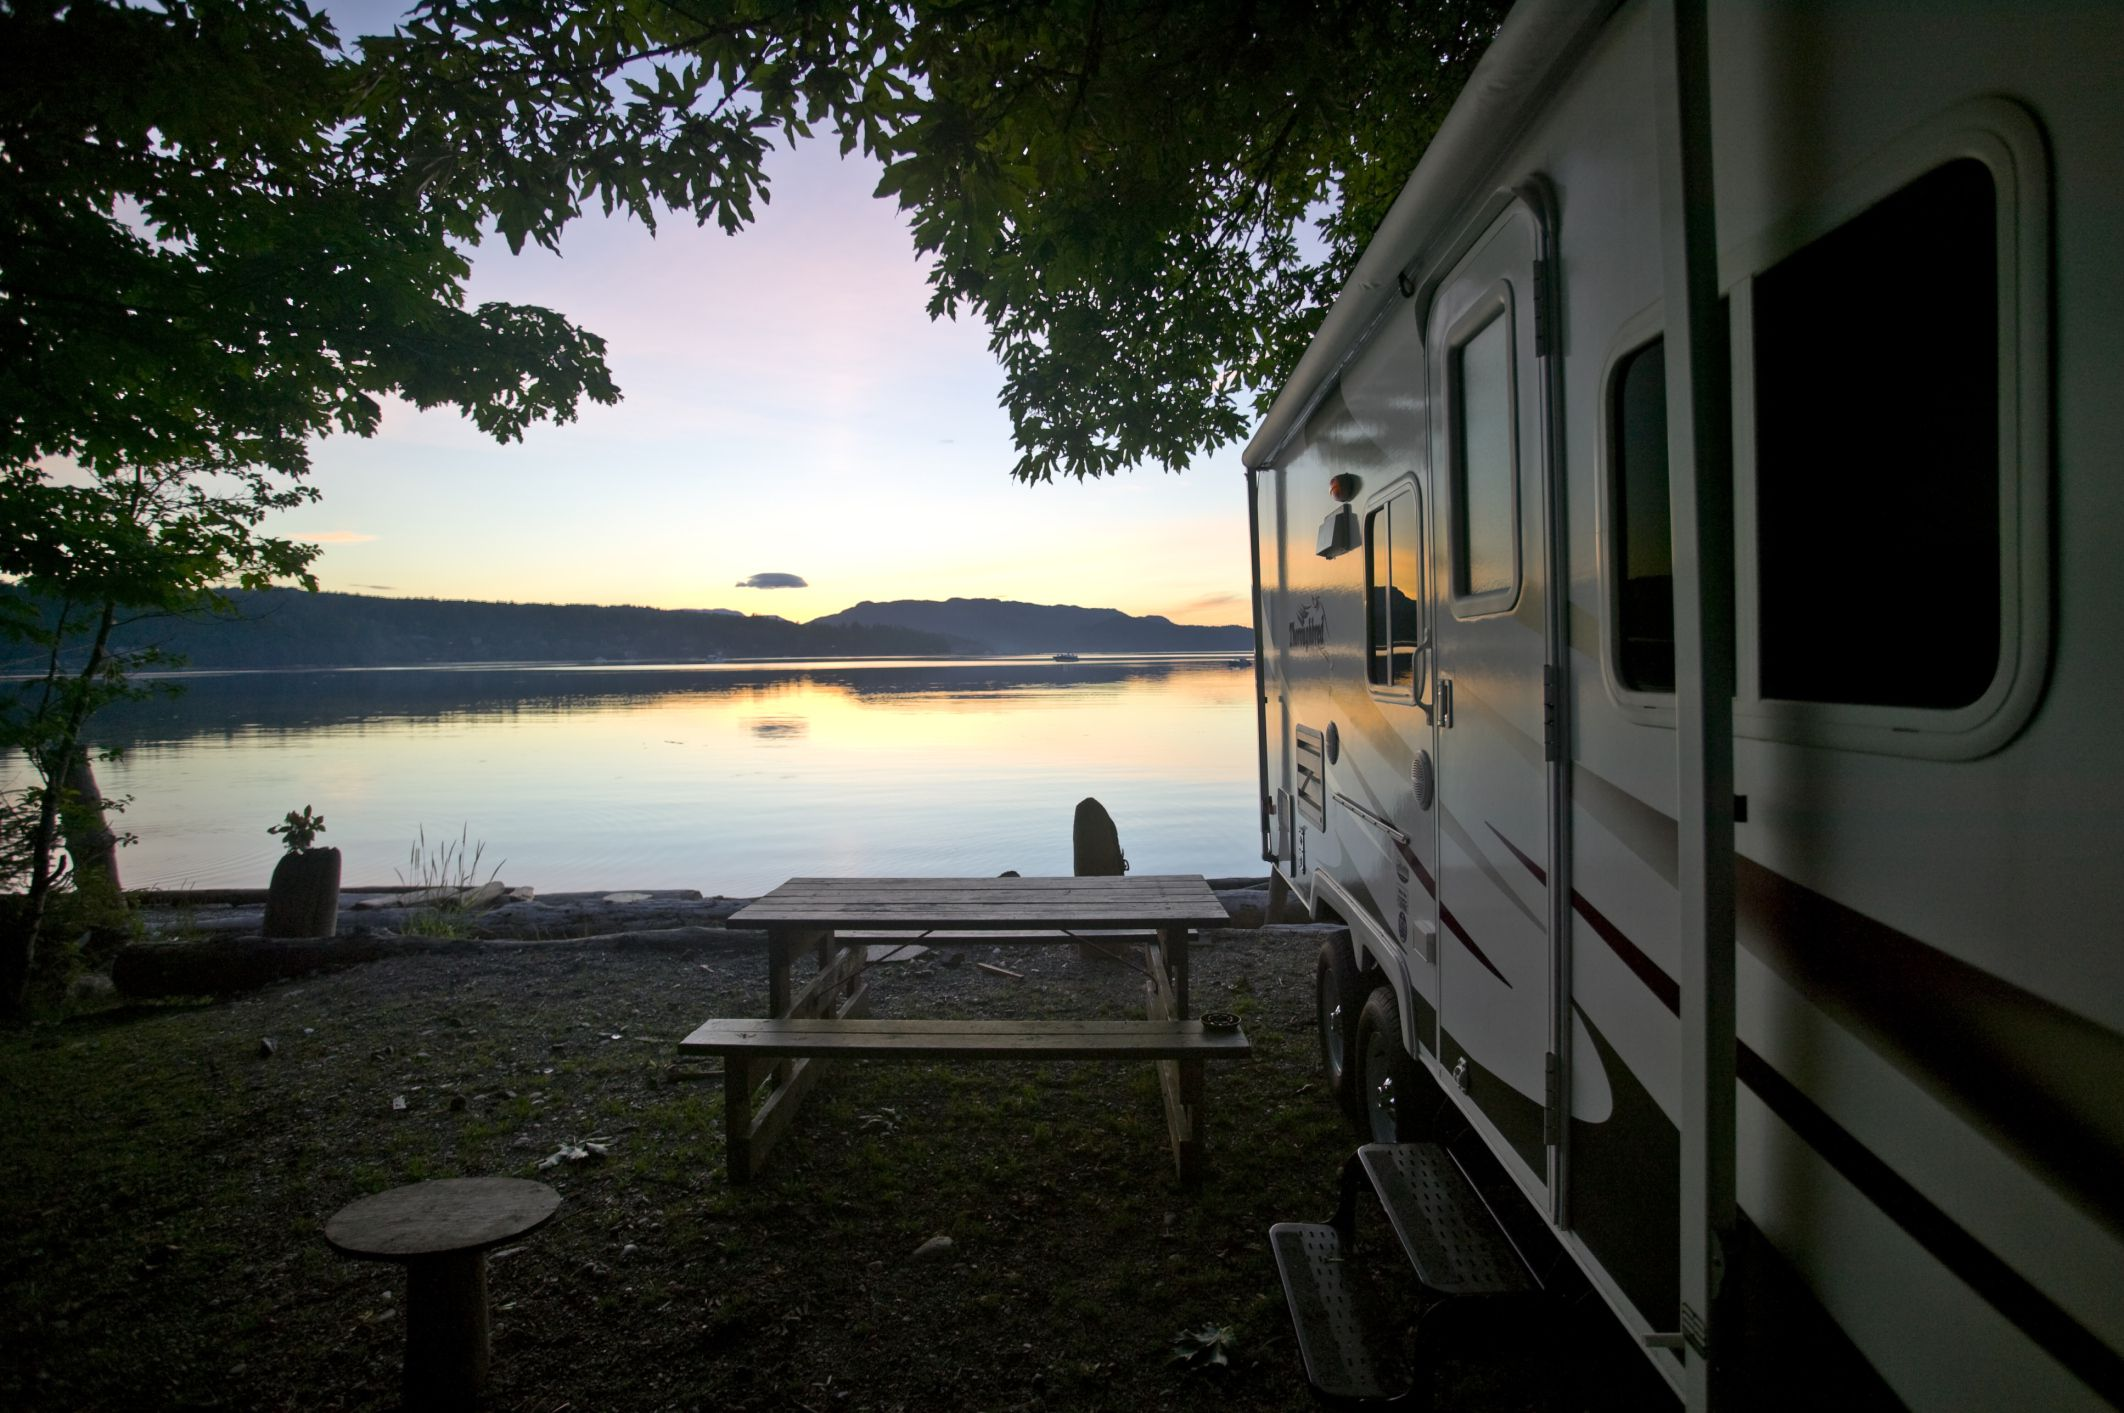 9 Rv Parks With The Best Views